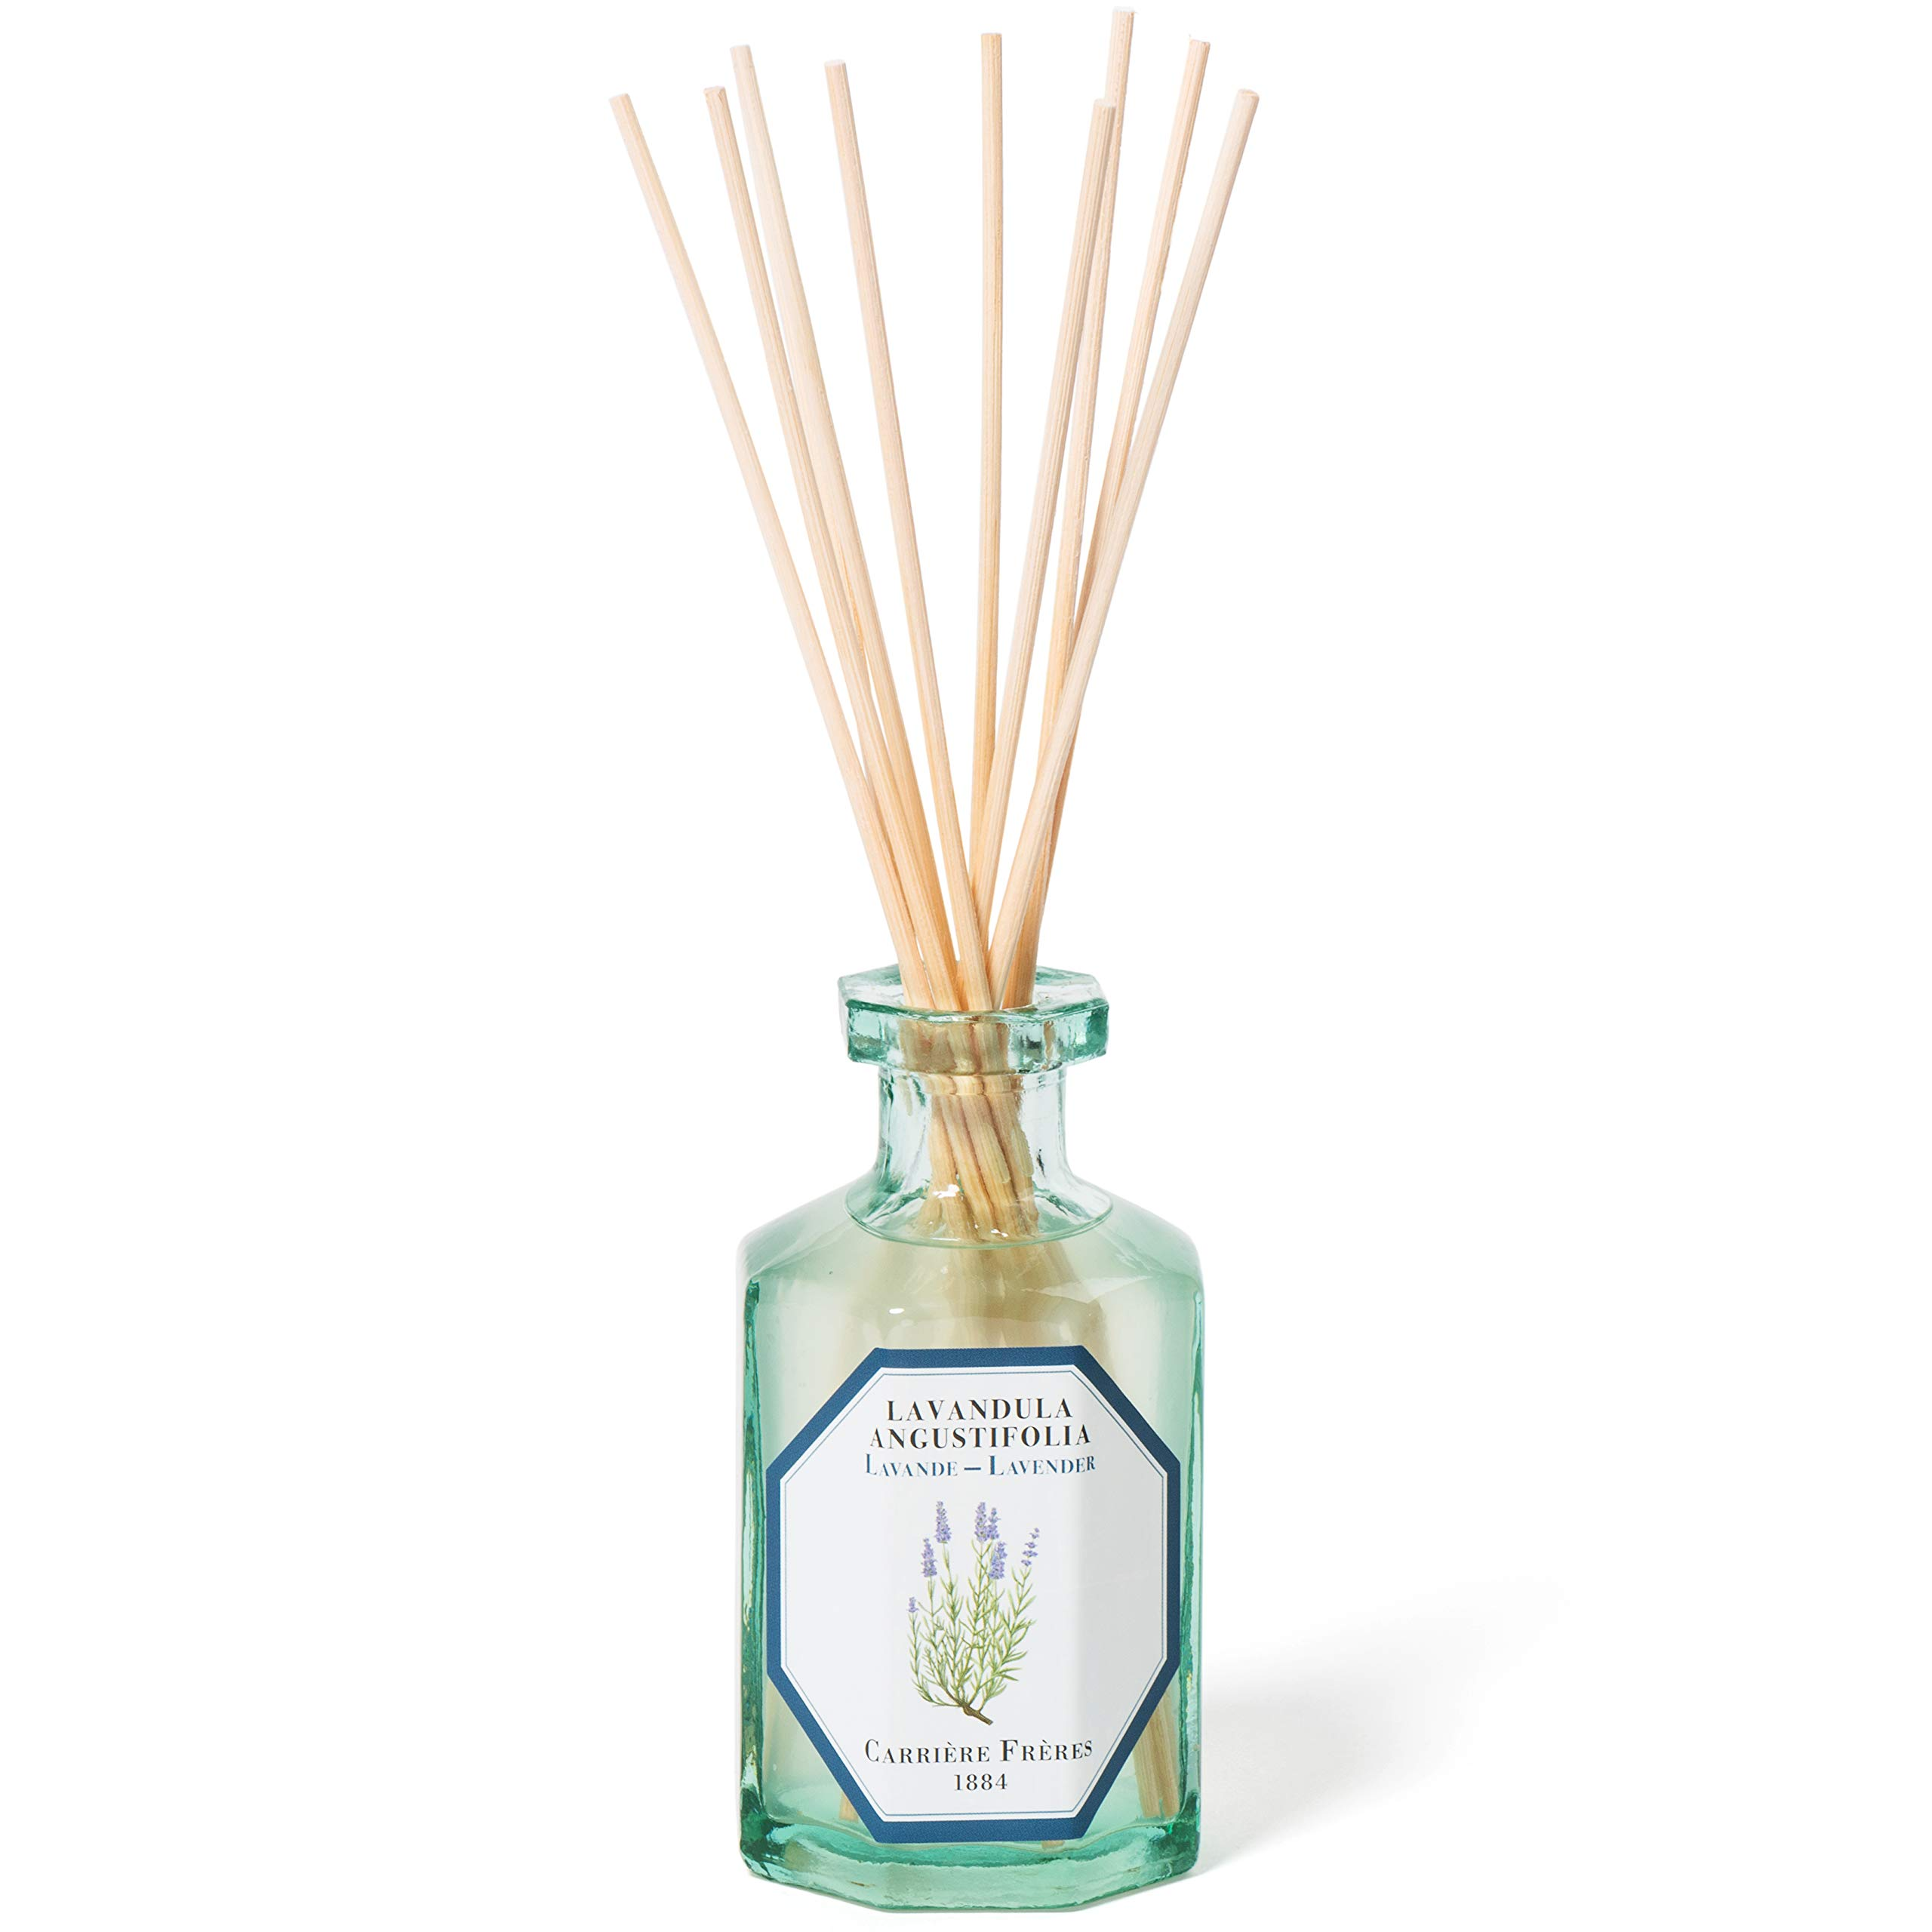 Carriere Freres Lavender Diffuser (6.4 oz) by Carriere Freres (Image #2)